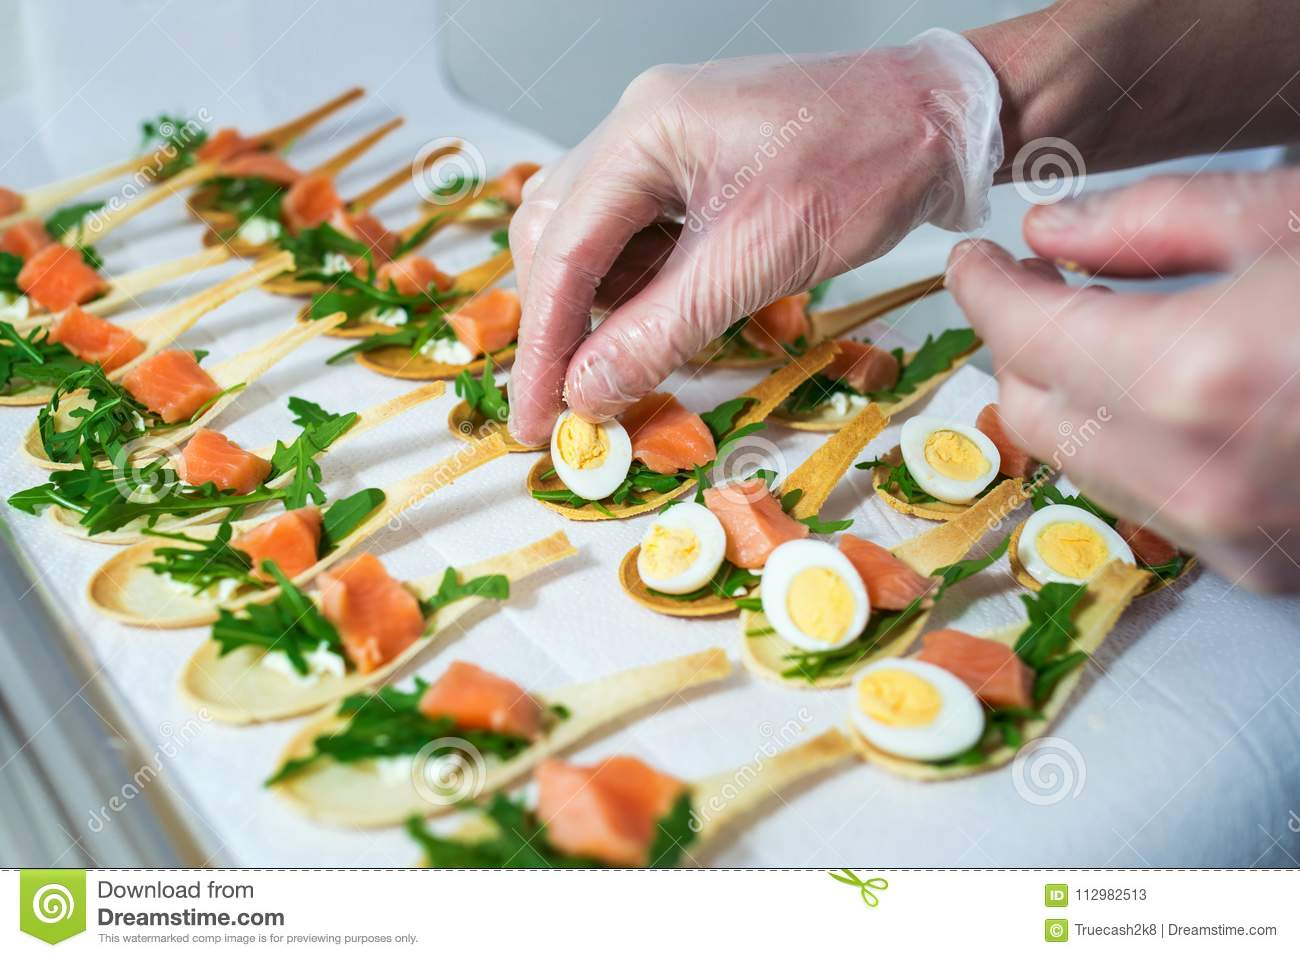 Delicates, appetizer filling with red fish and greens. Catering service.